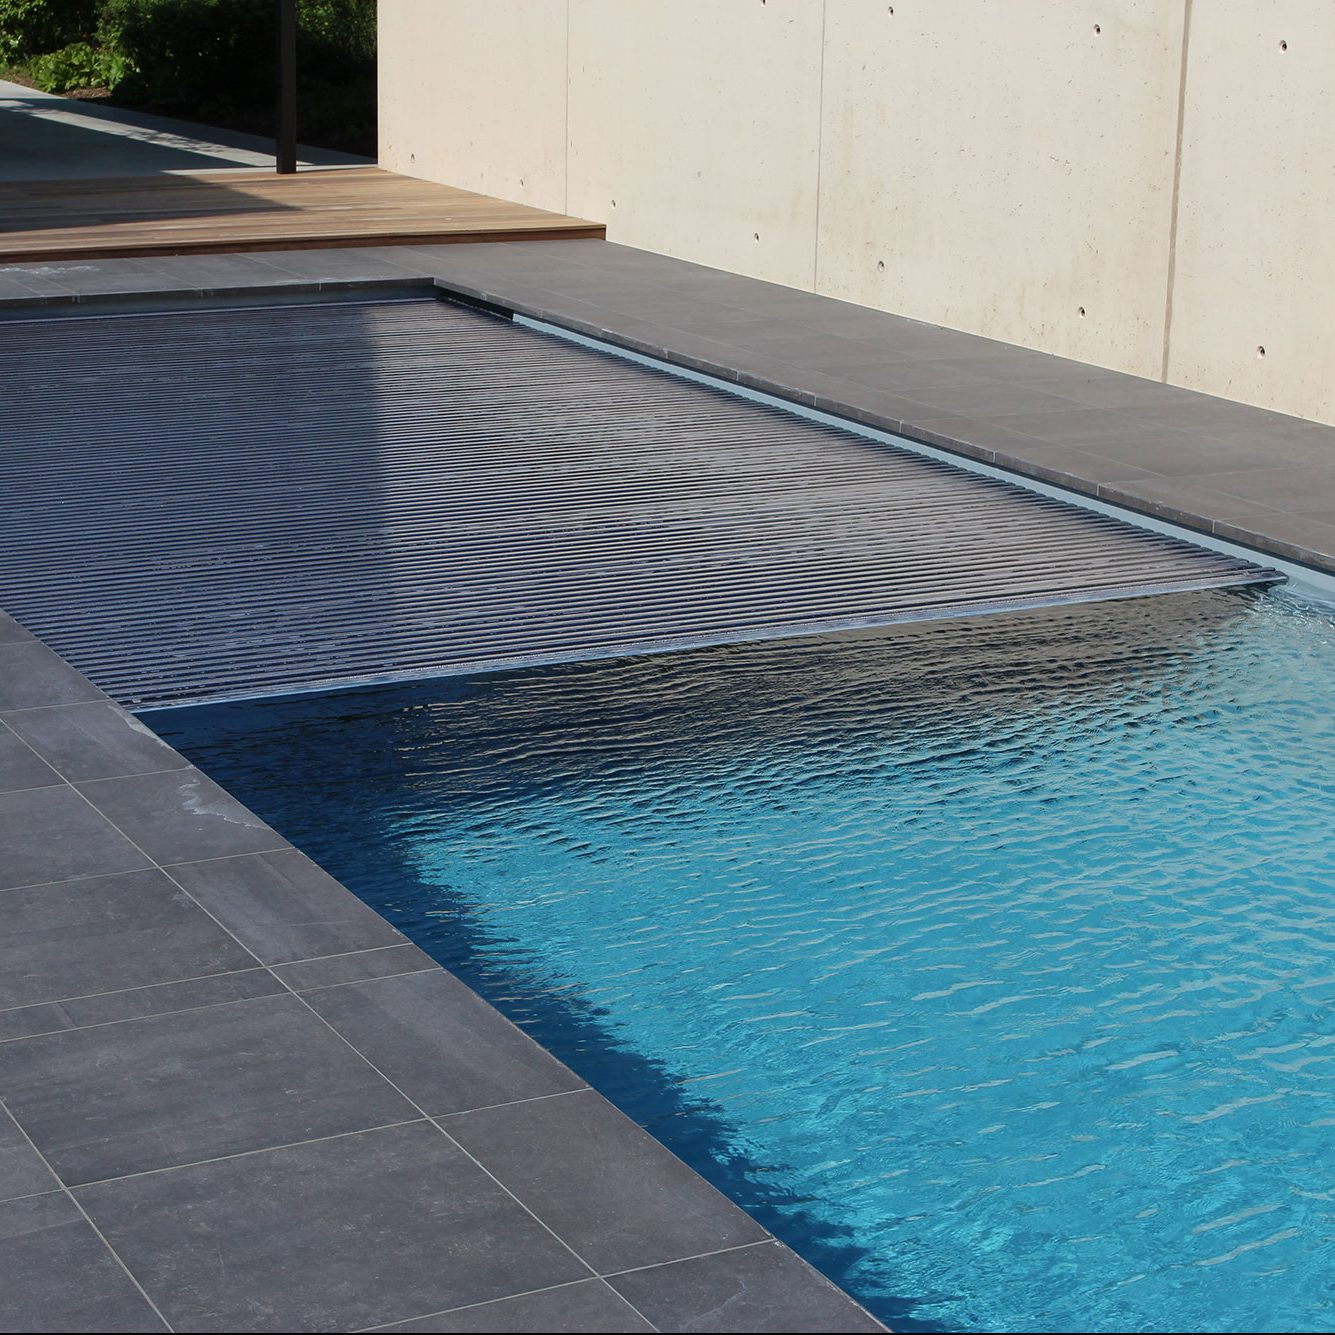 Materiel de piscine construction de piscines biarritz for Equipement piscine